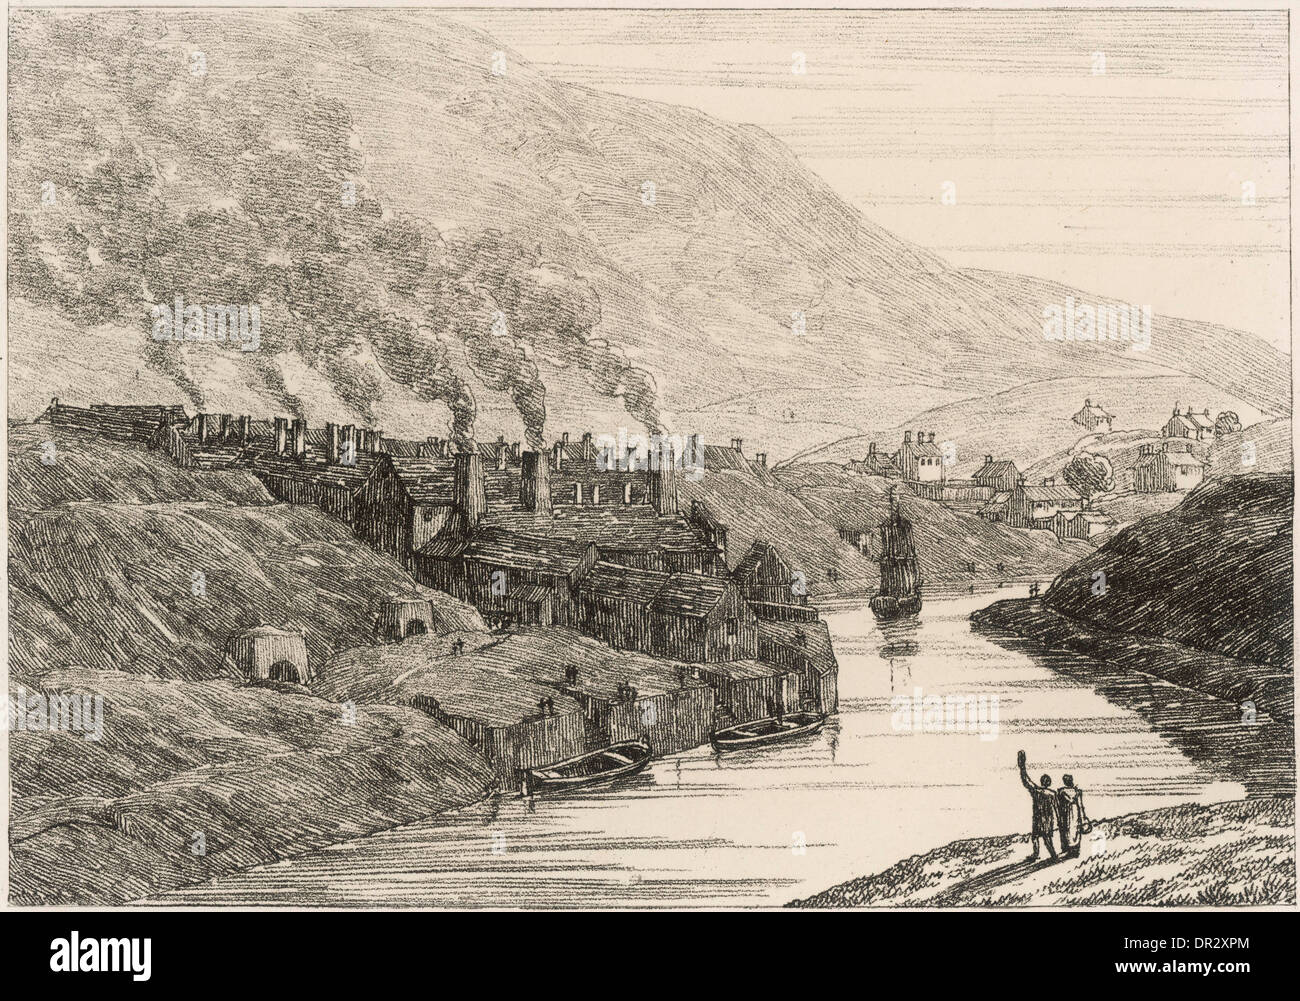 COPPER WORKS - Stock Image